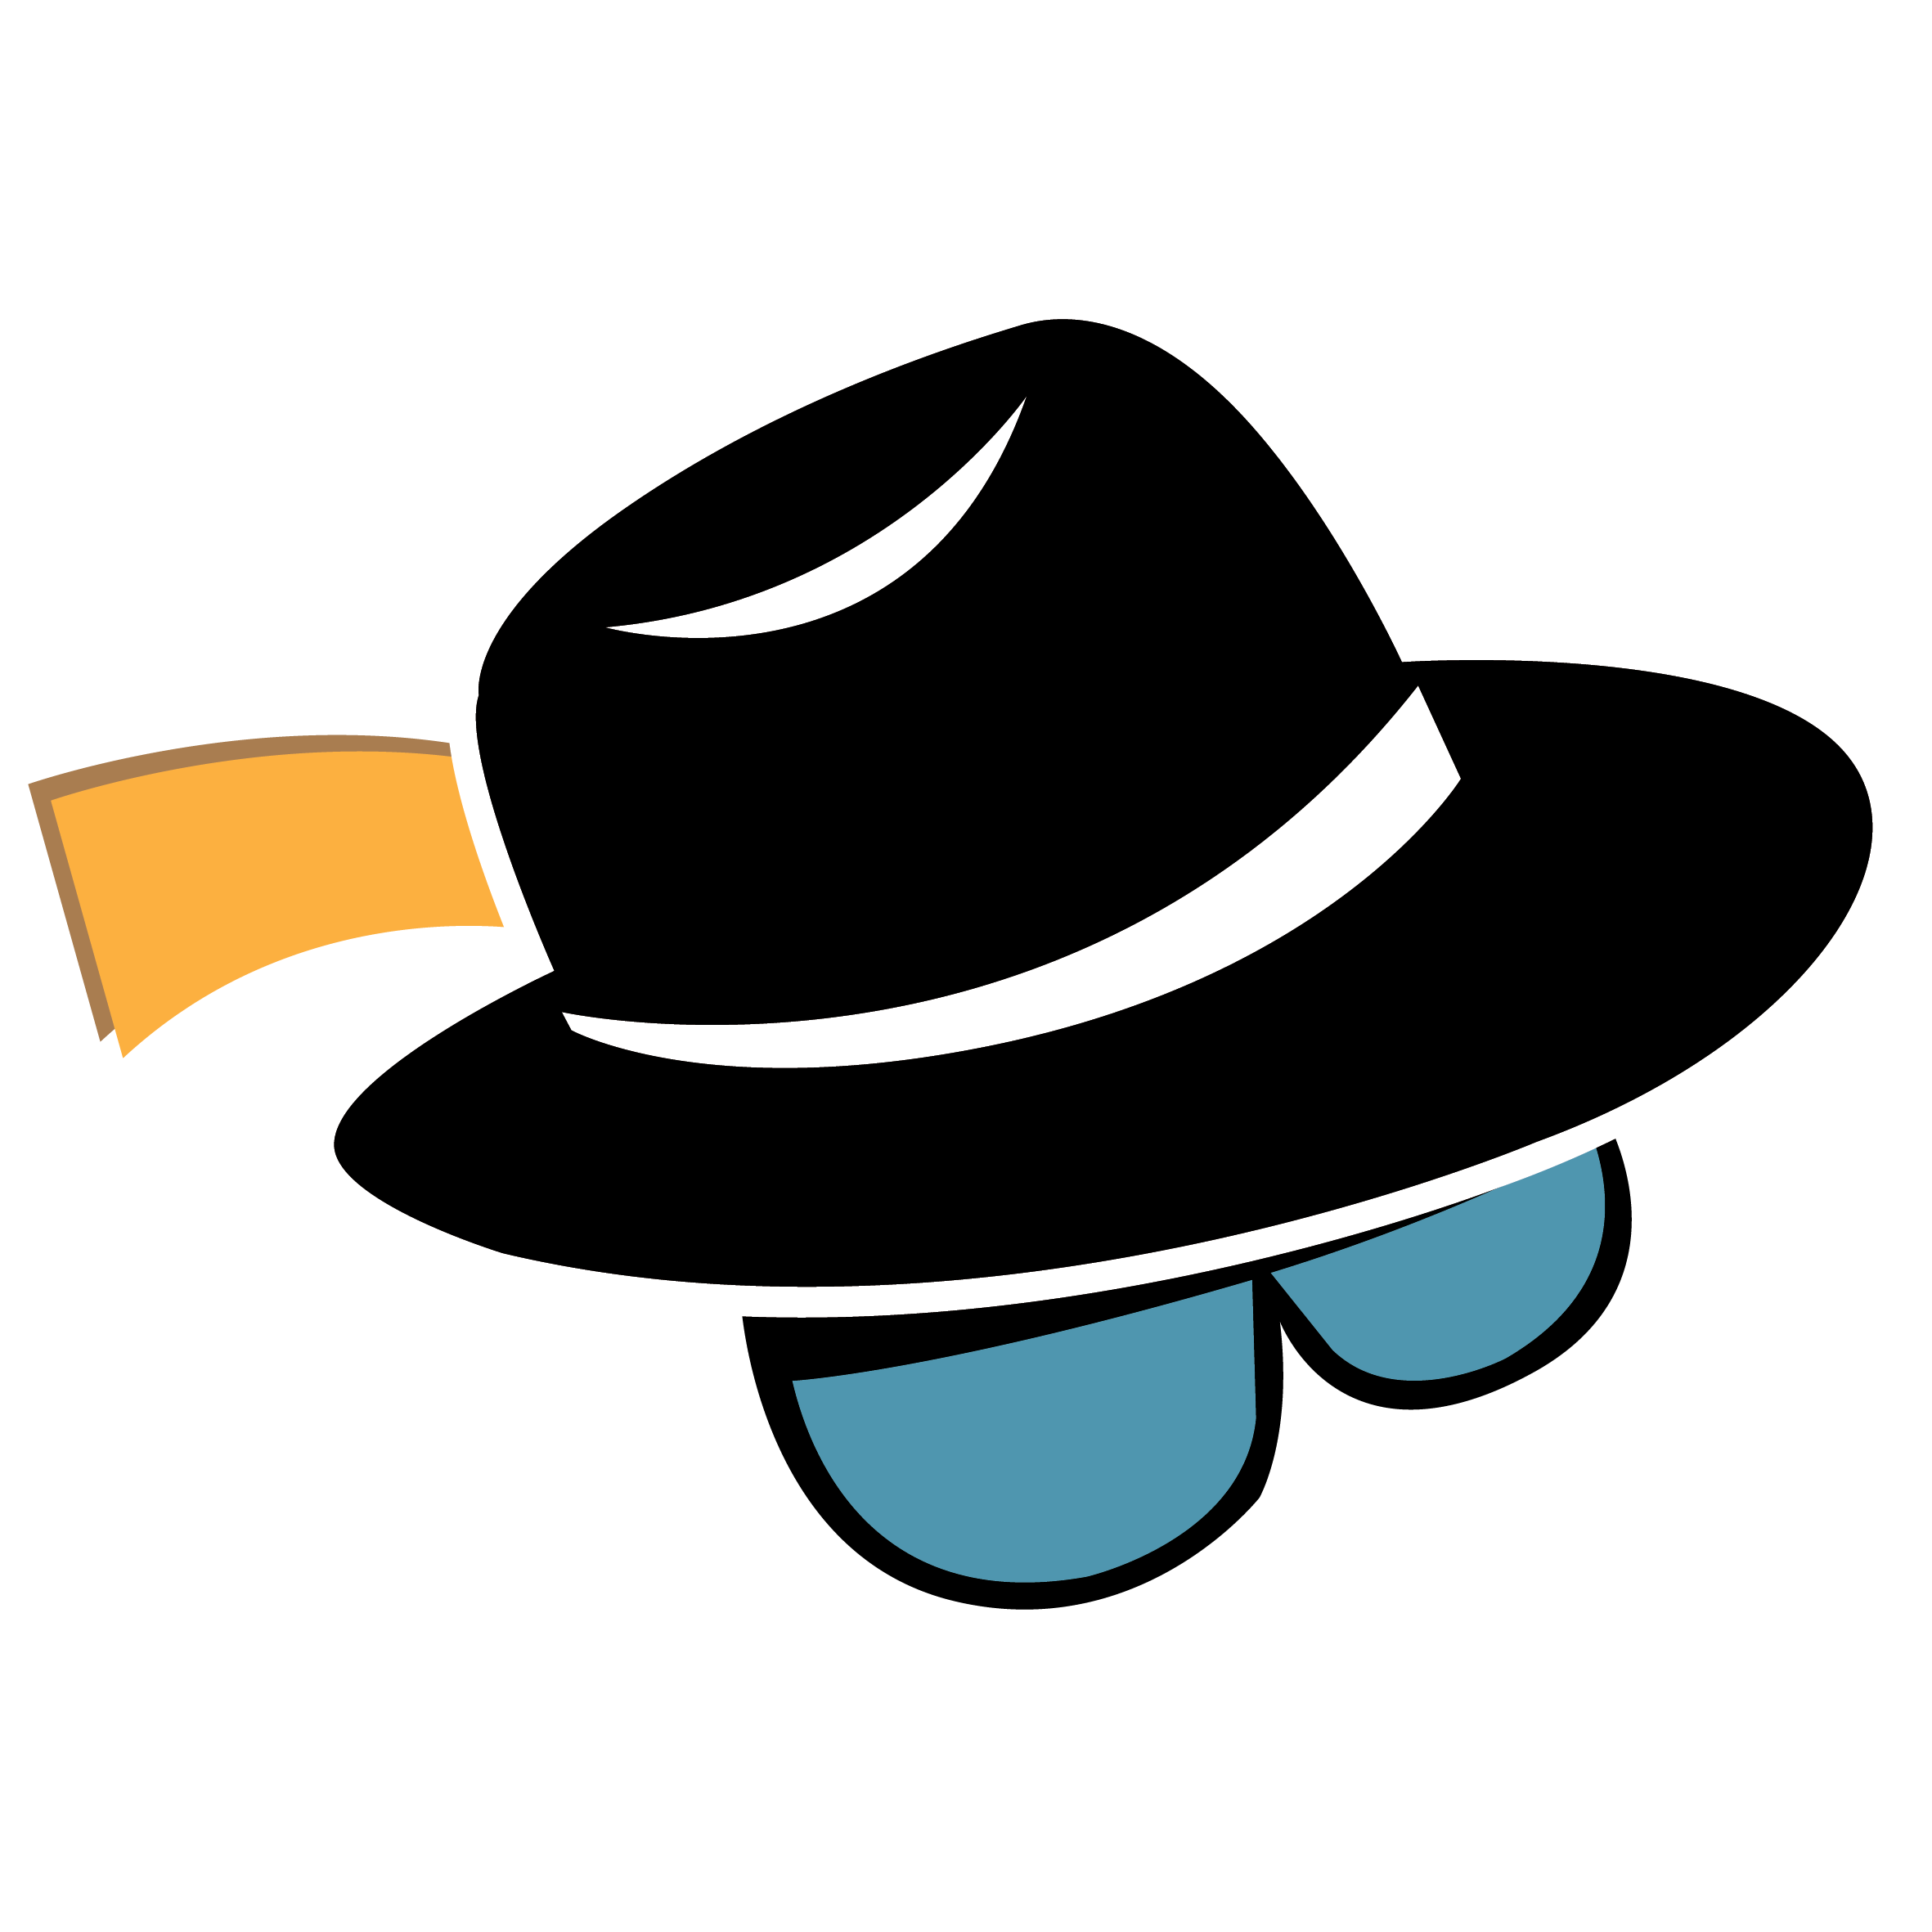 Fedora clipart press hat. Coding bootcamp refactory kit